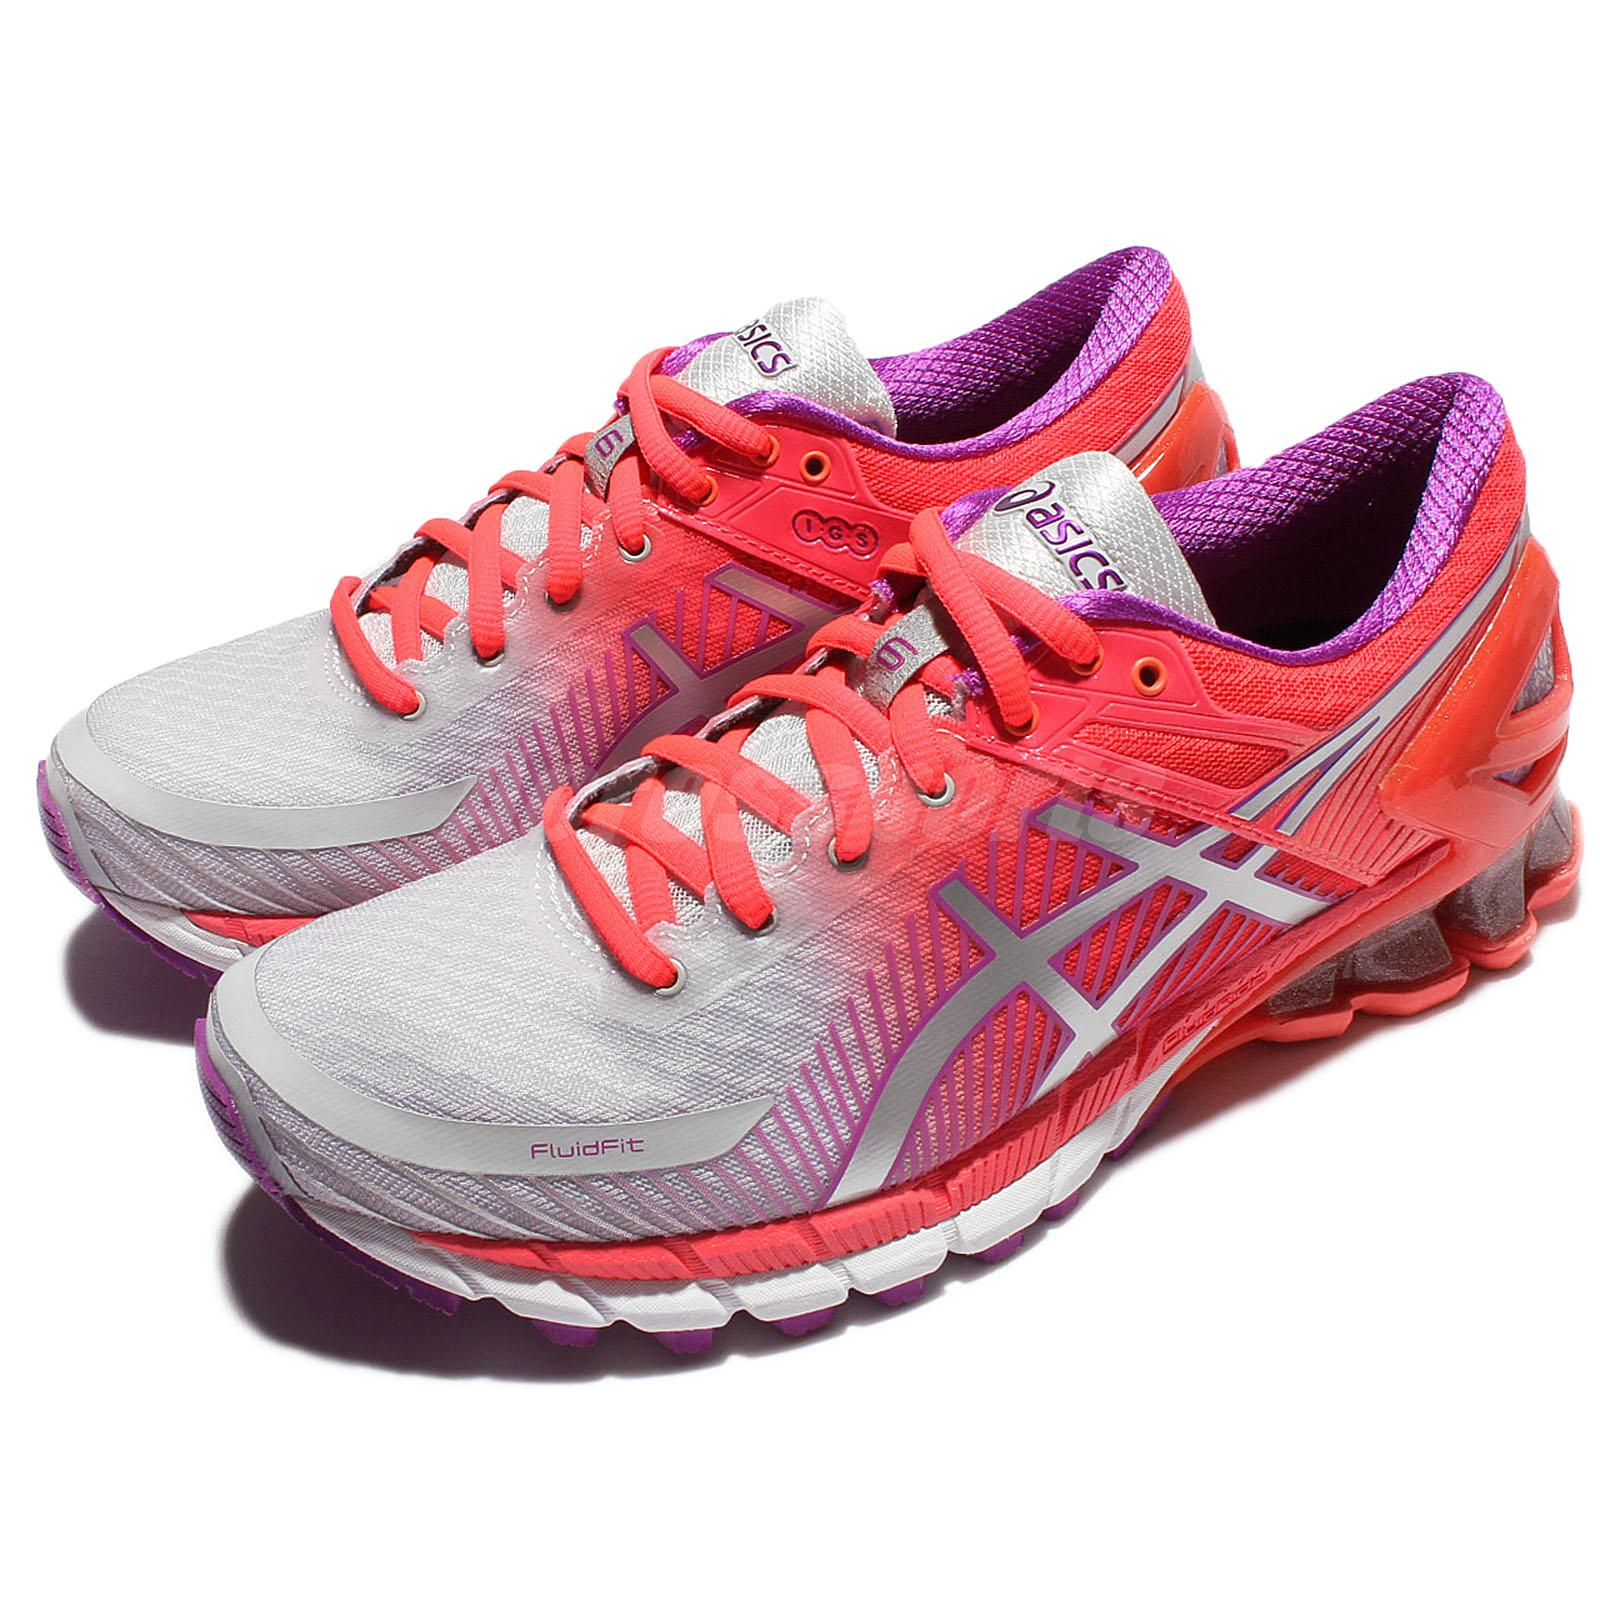 super popular 6c5eb 14225 Details about Asics Gel-Kinsei 6 VI Pink Silver Women Running Shoes Sneaker  Trainer T694N-9693